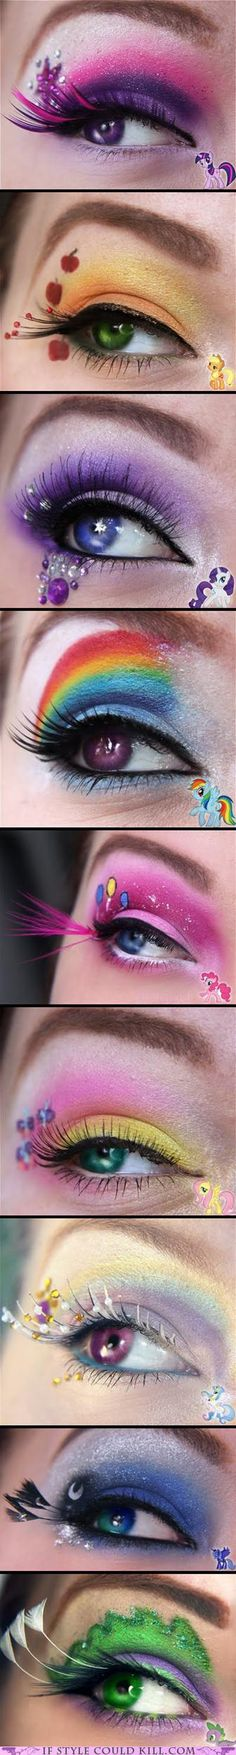 My Little Pony: Friendship is Magic eye make-up!